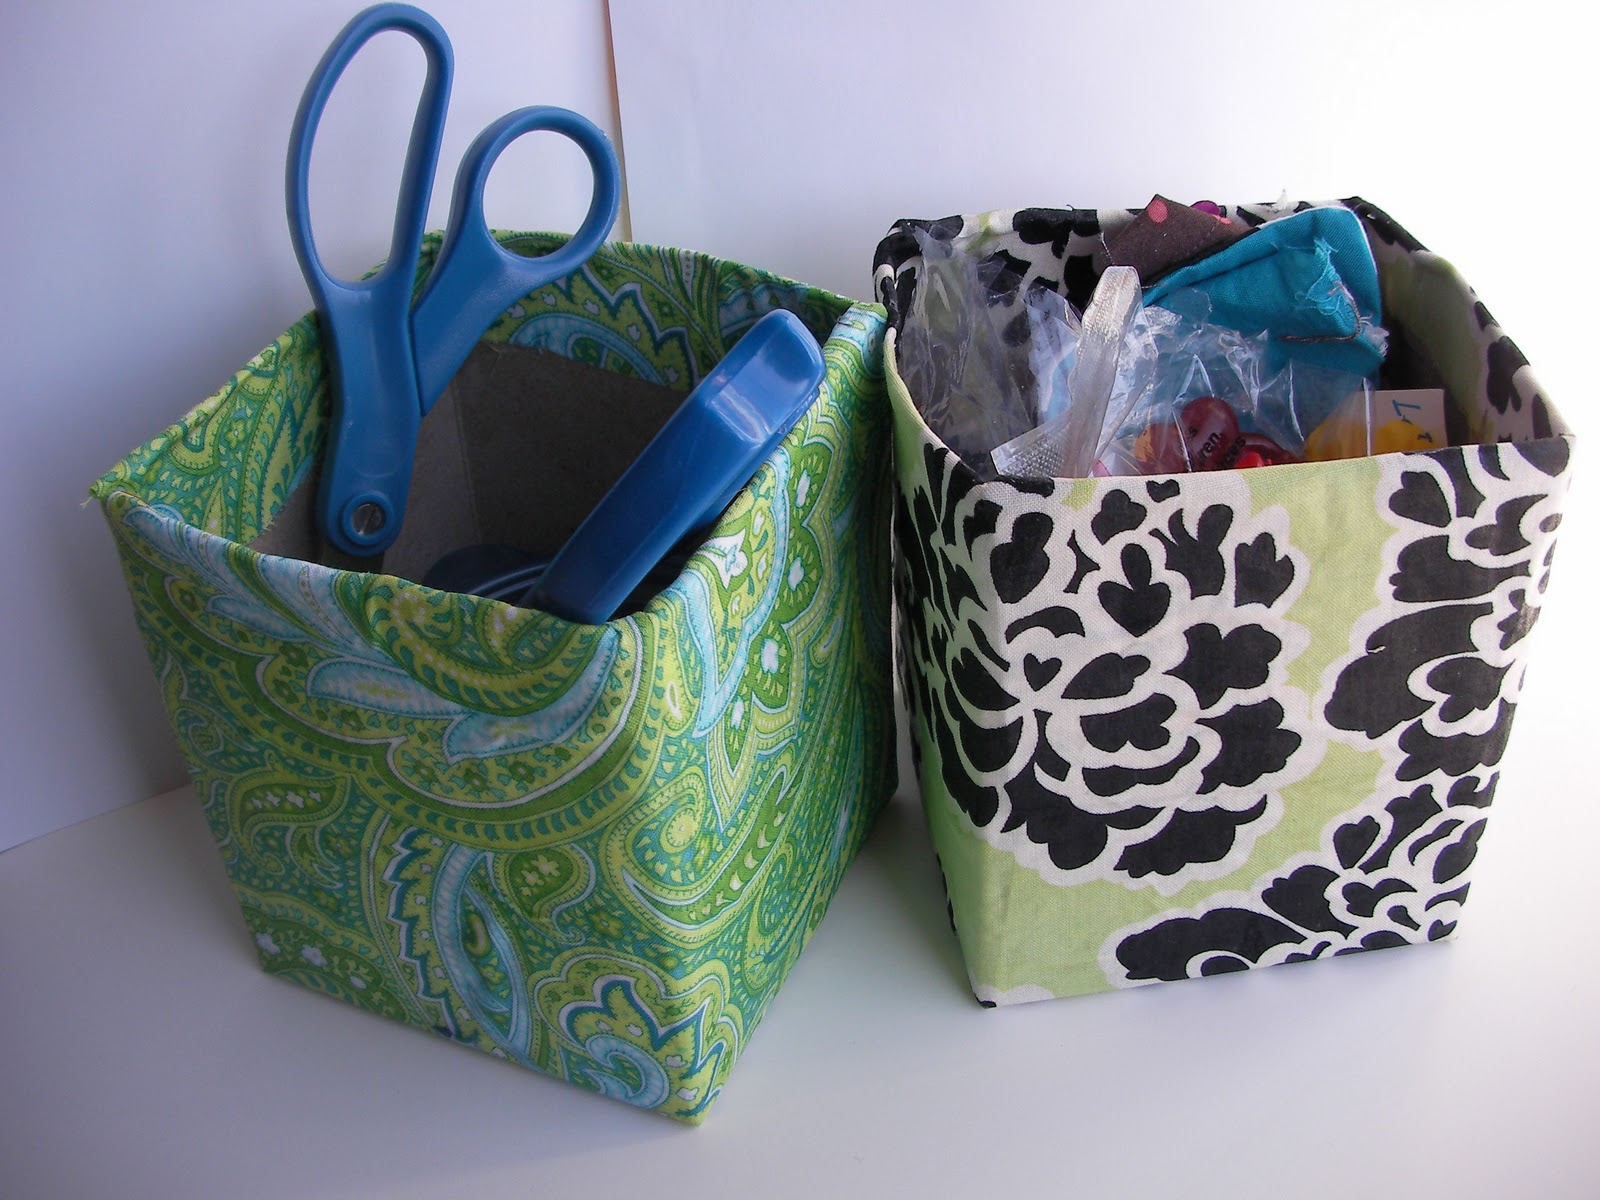 My First Room Toddler 3 Piece Room In A Box: Sew Fabulous: DIY Storage Containers